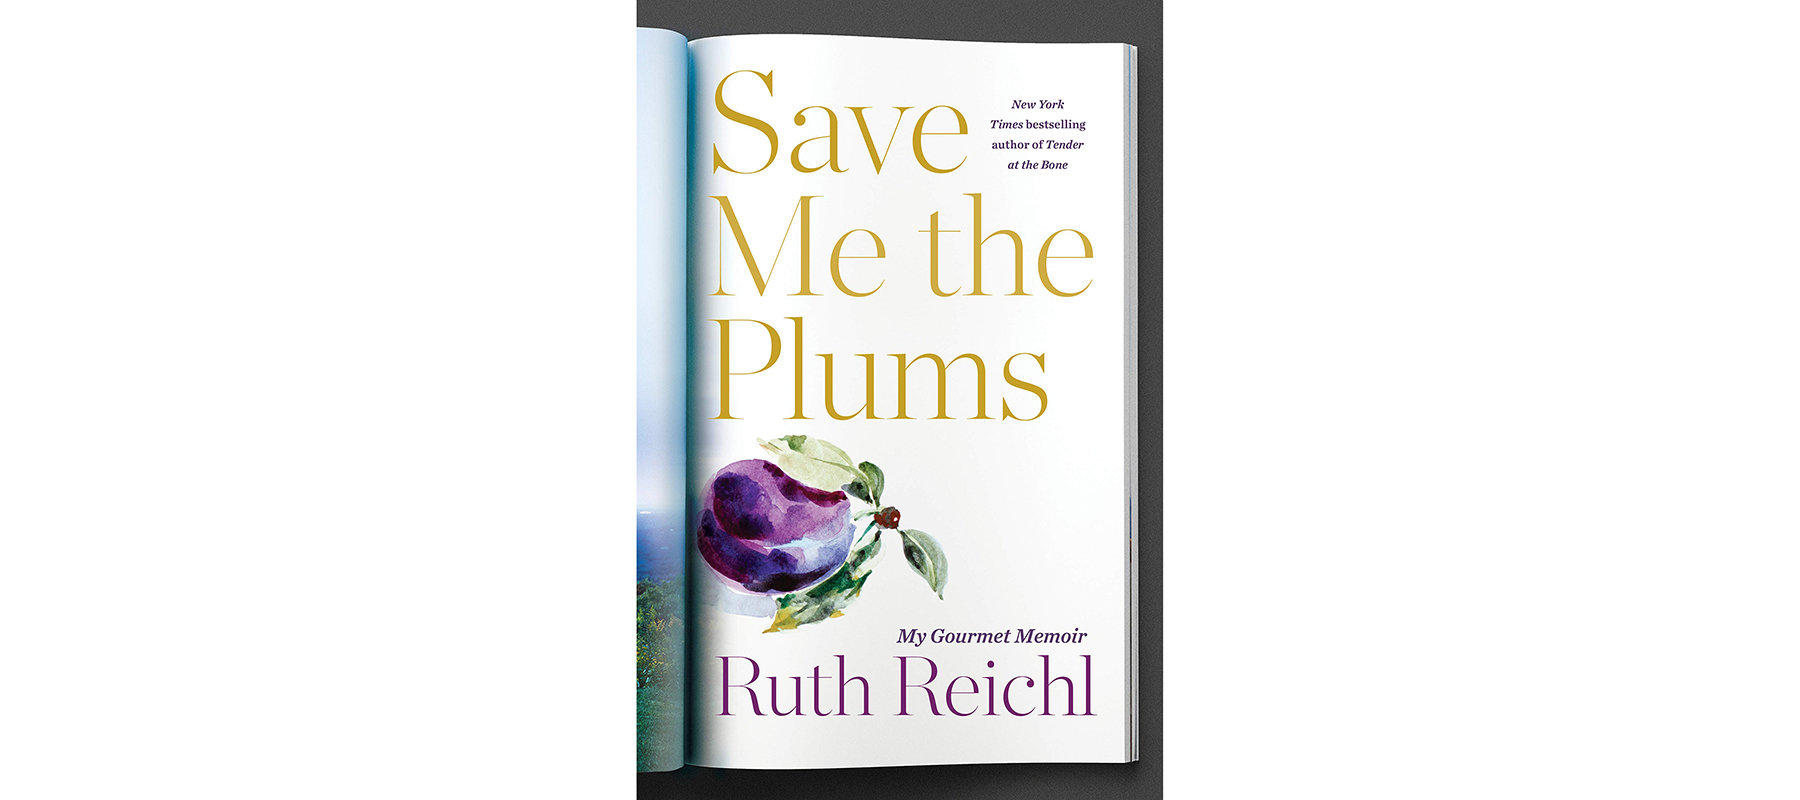 Save Me the Plums, by Ruth Reichl